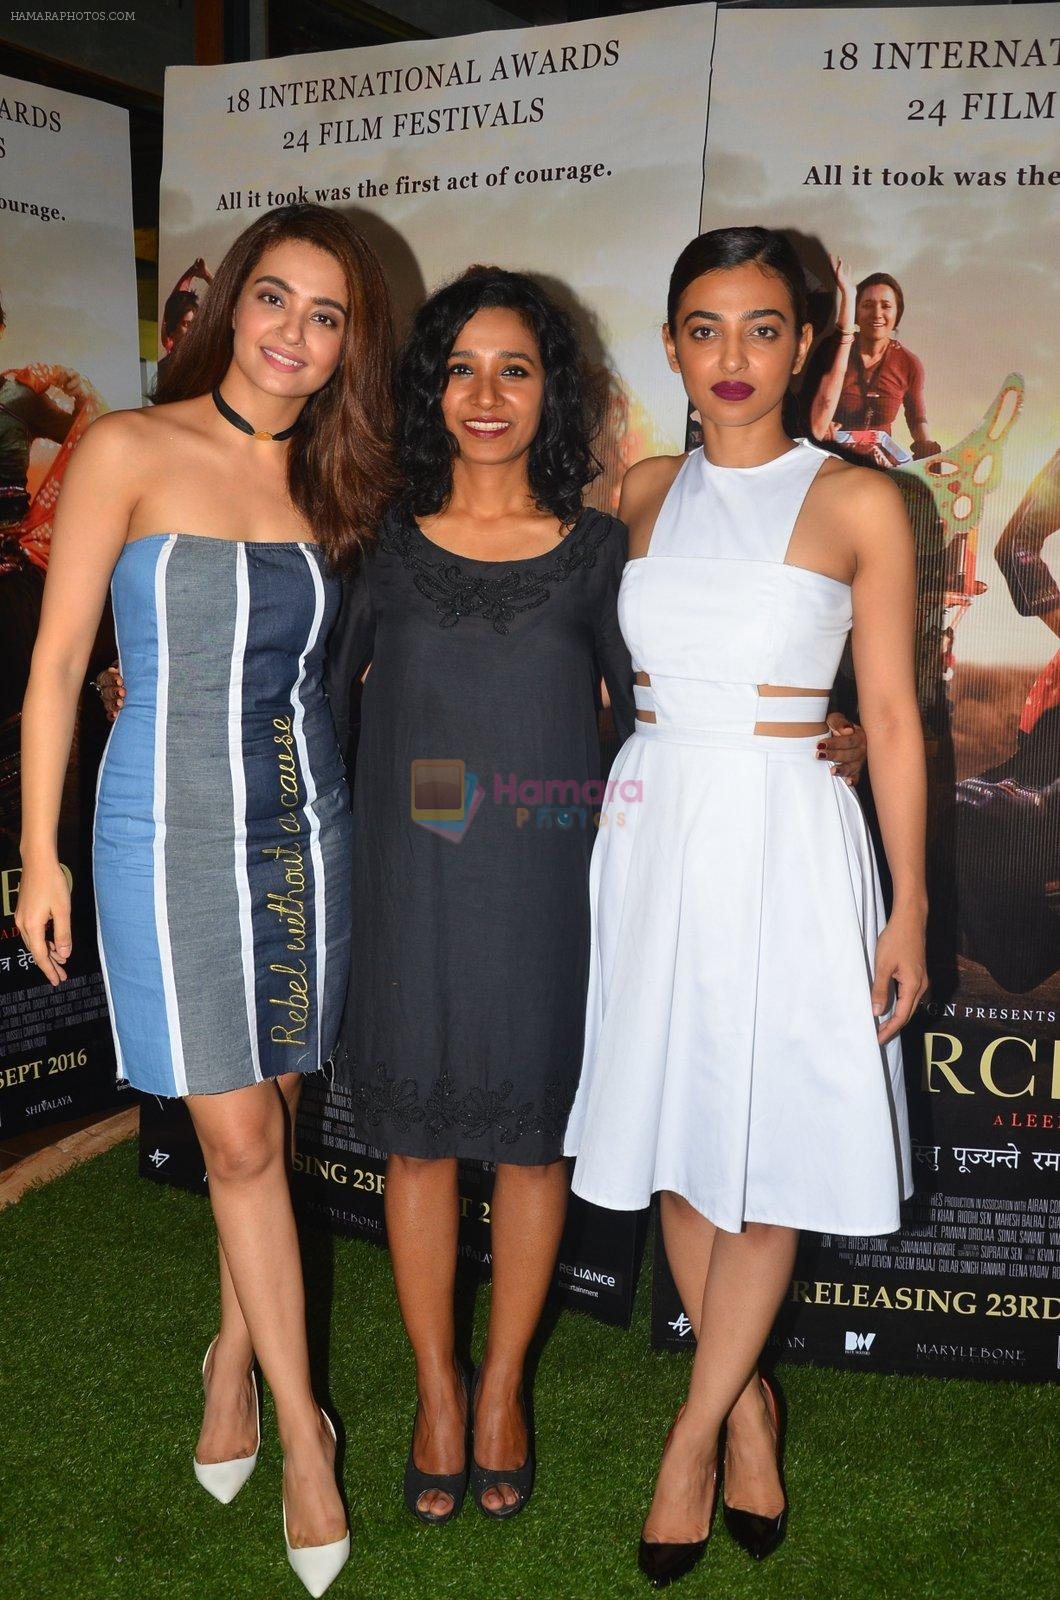 Surveen Chawla, Tannishtha Chatterjee, Radhika Apte at Parched Photoshoot on 17th Sept 2016